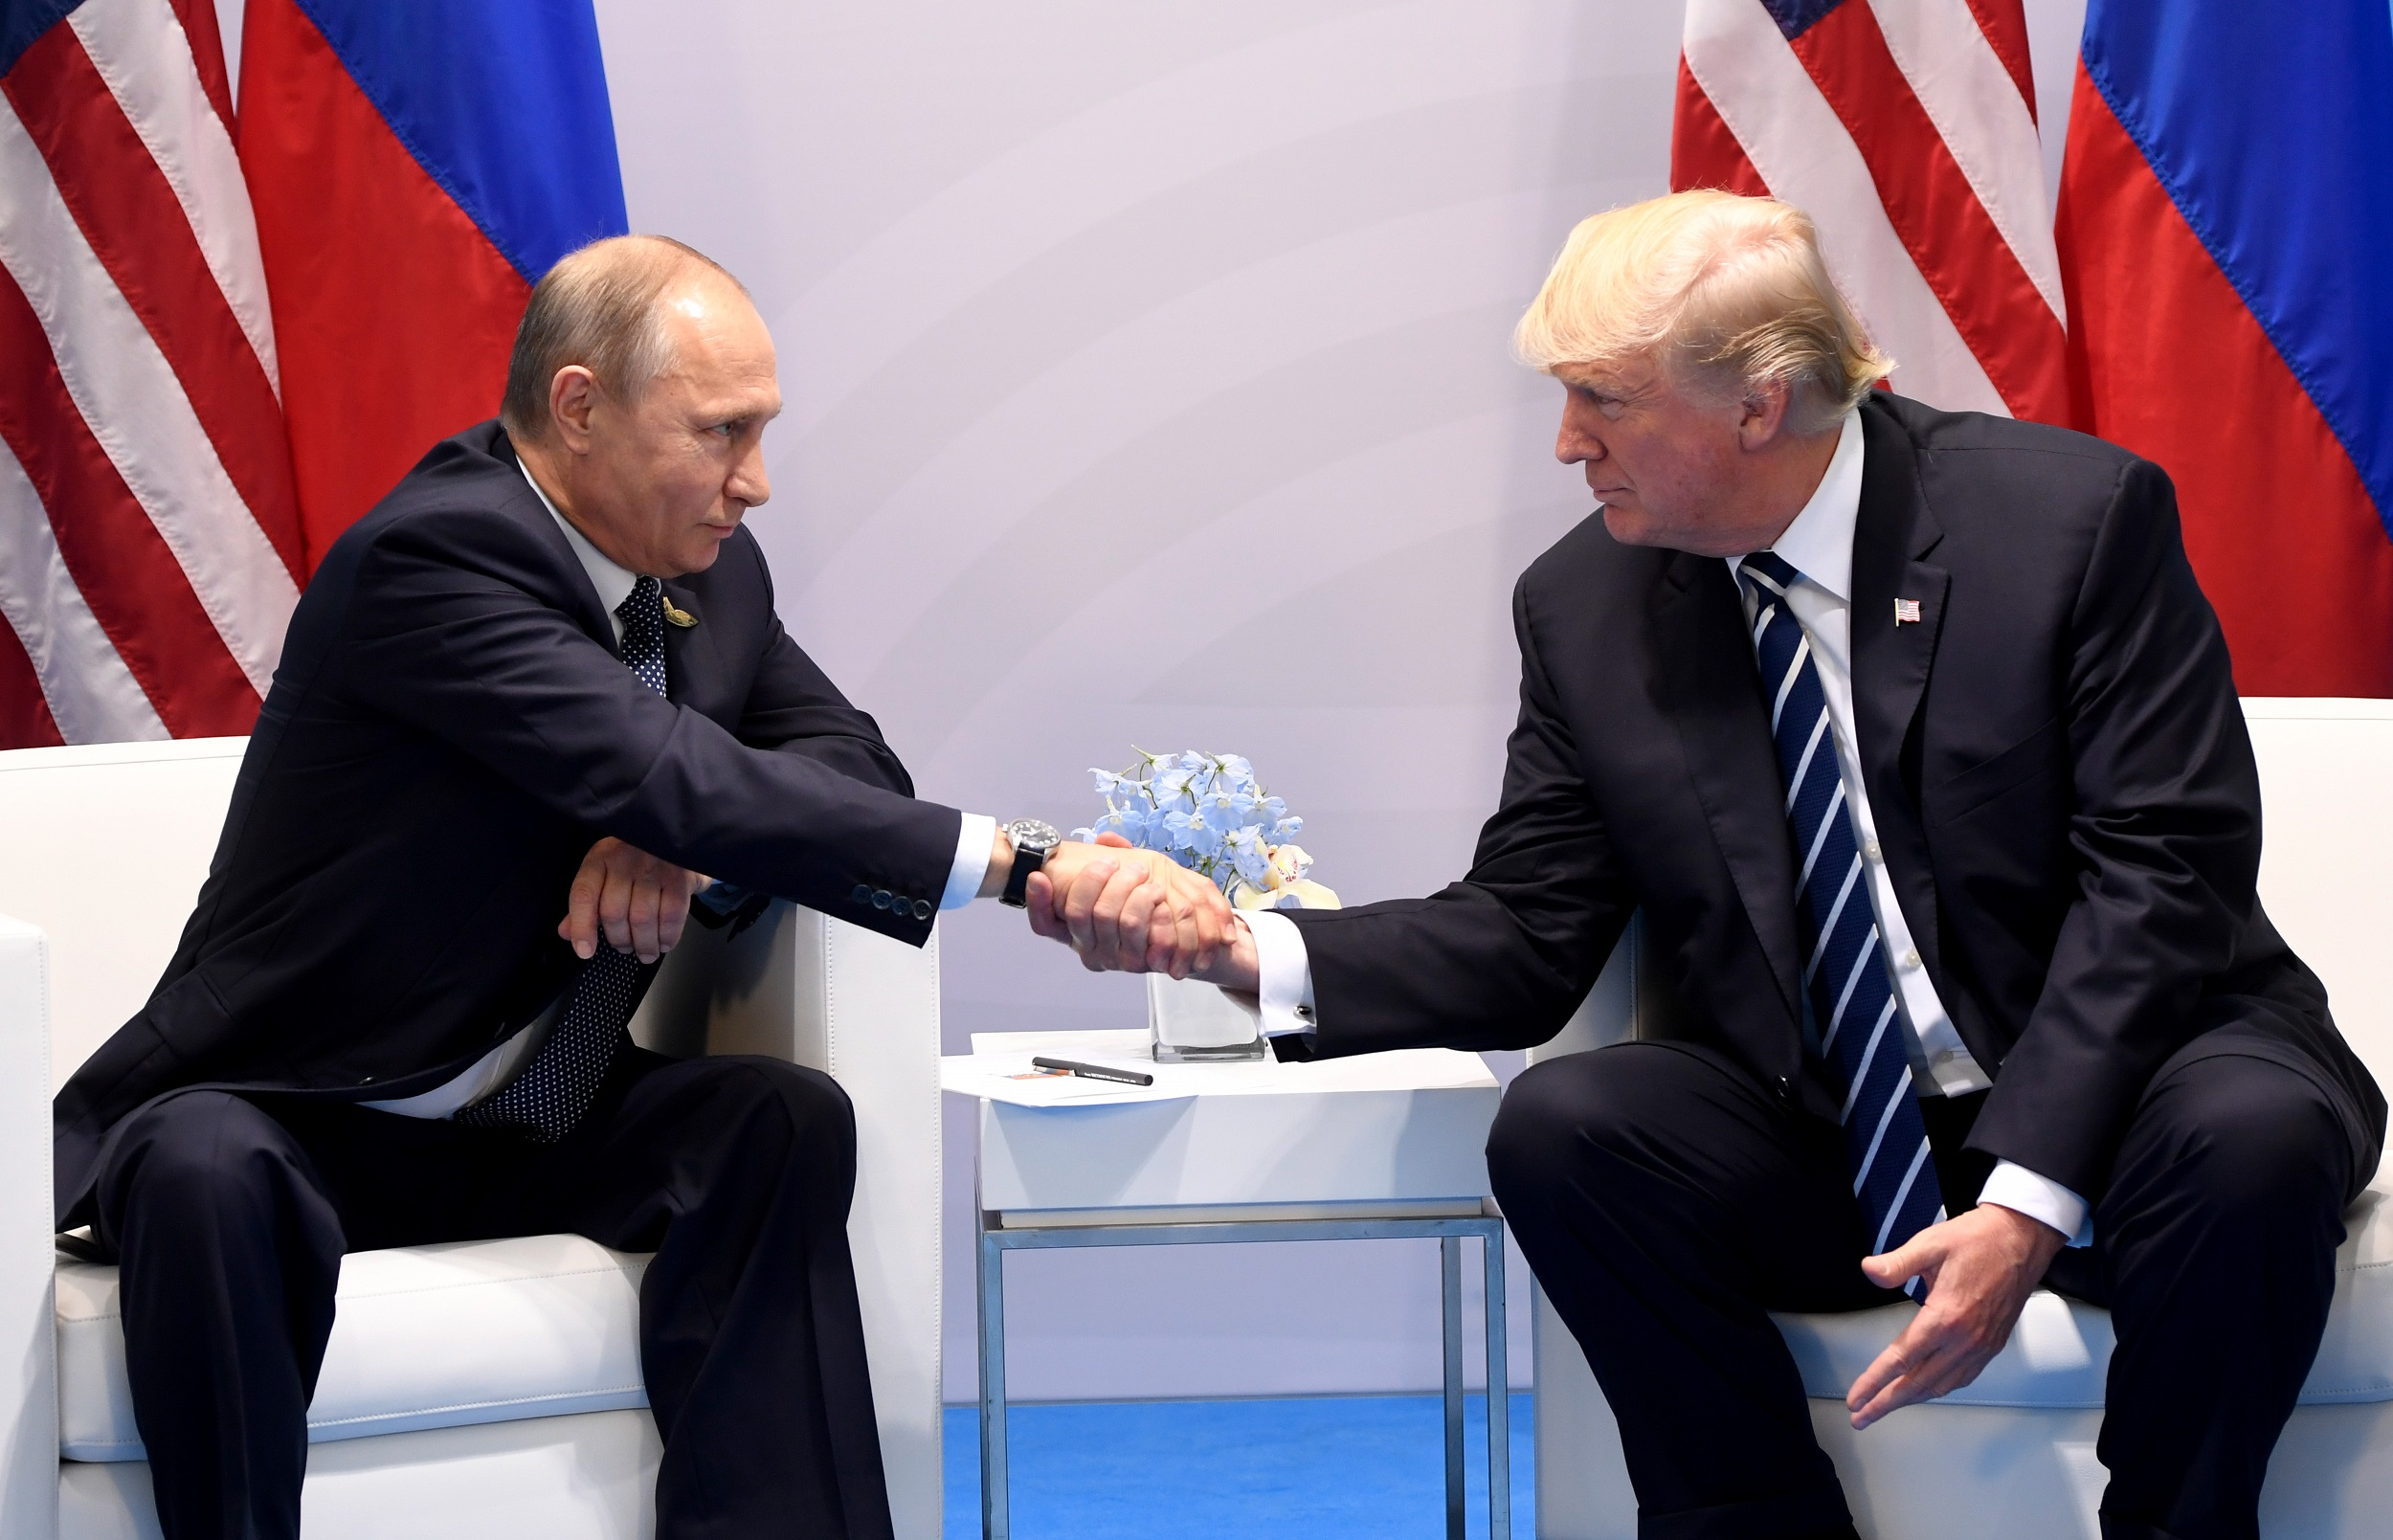 WEB_PHOTO_PUTIN_TRUMP_07072017